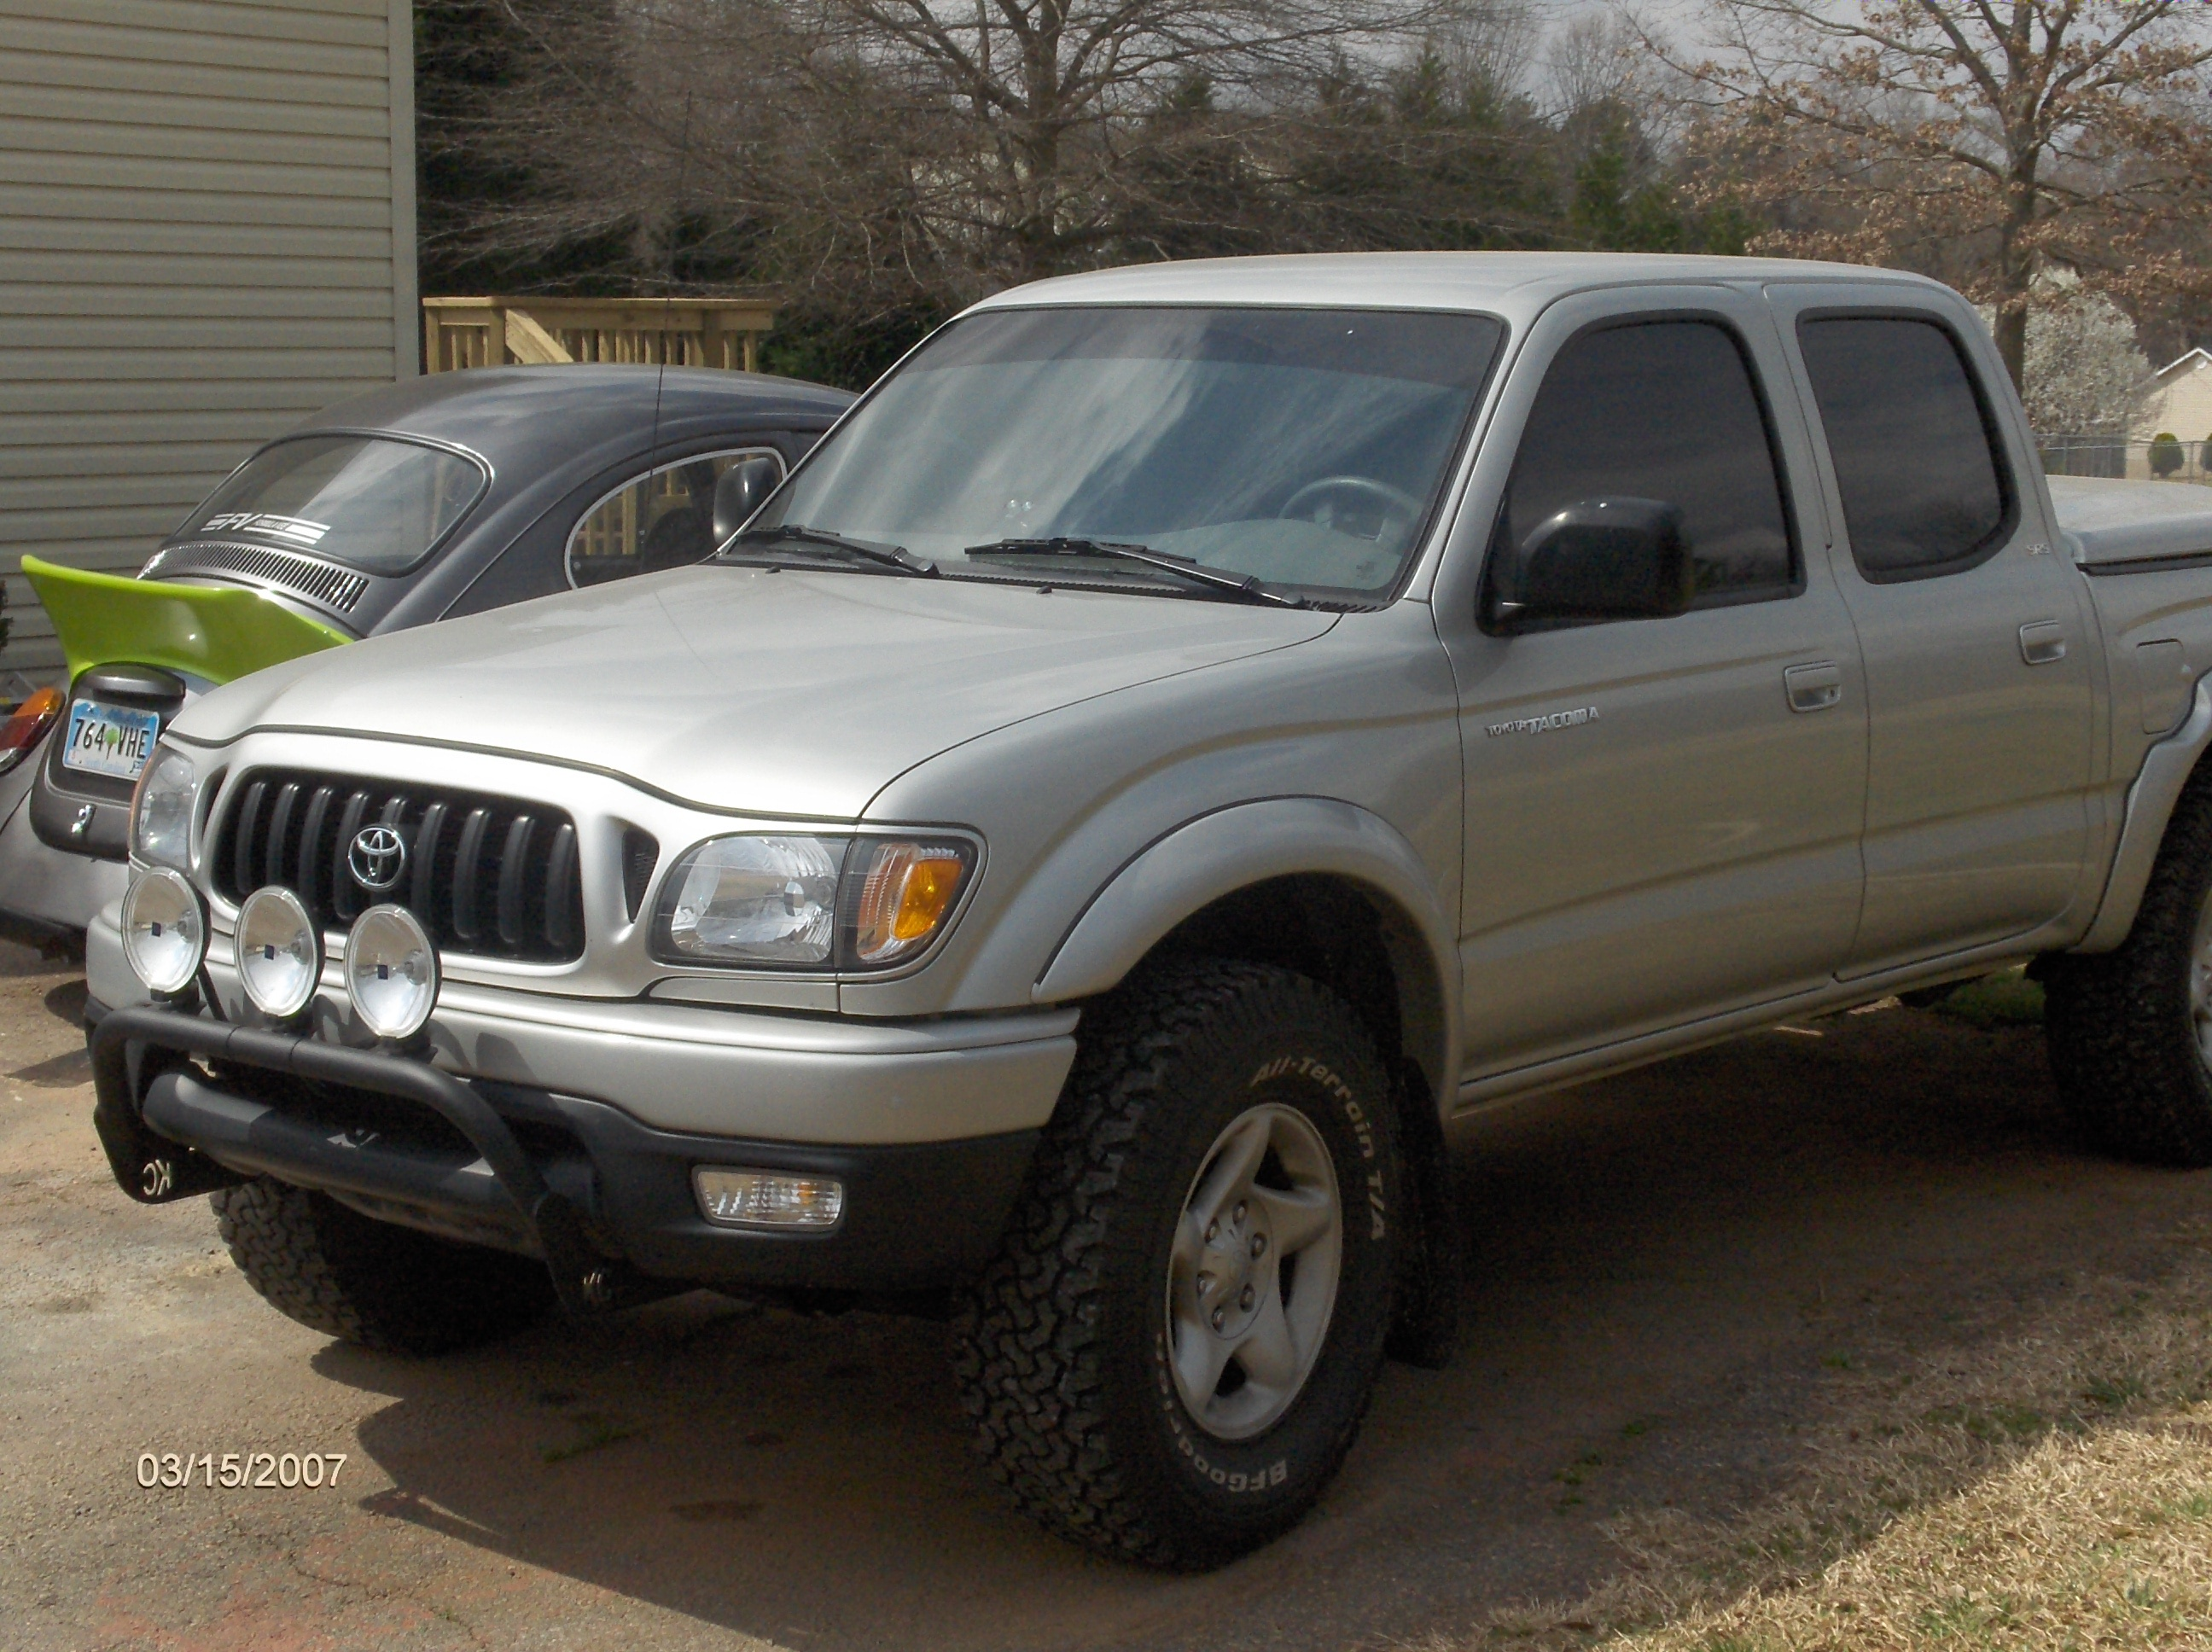 oldschooltuner 2003 toyota tacoma xtra cab specs photos modification info at cardomain. Black Bedroom Furniture Sets. Home Design Ideas